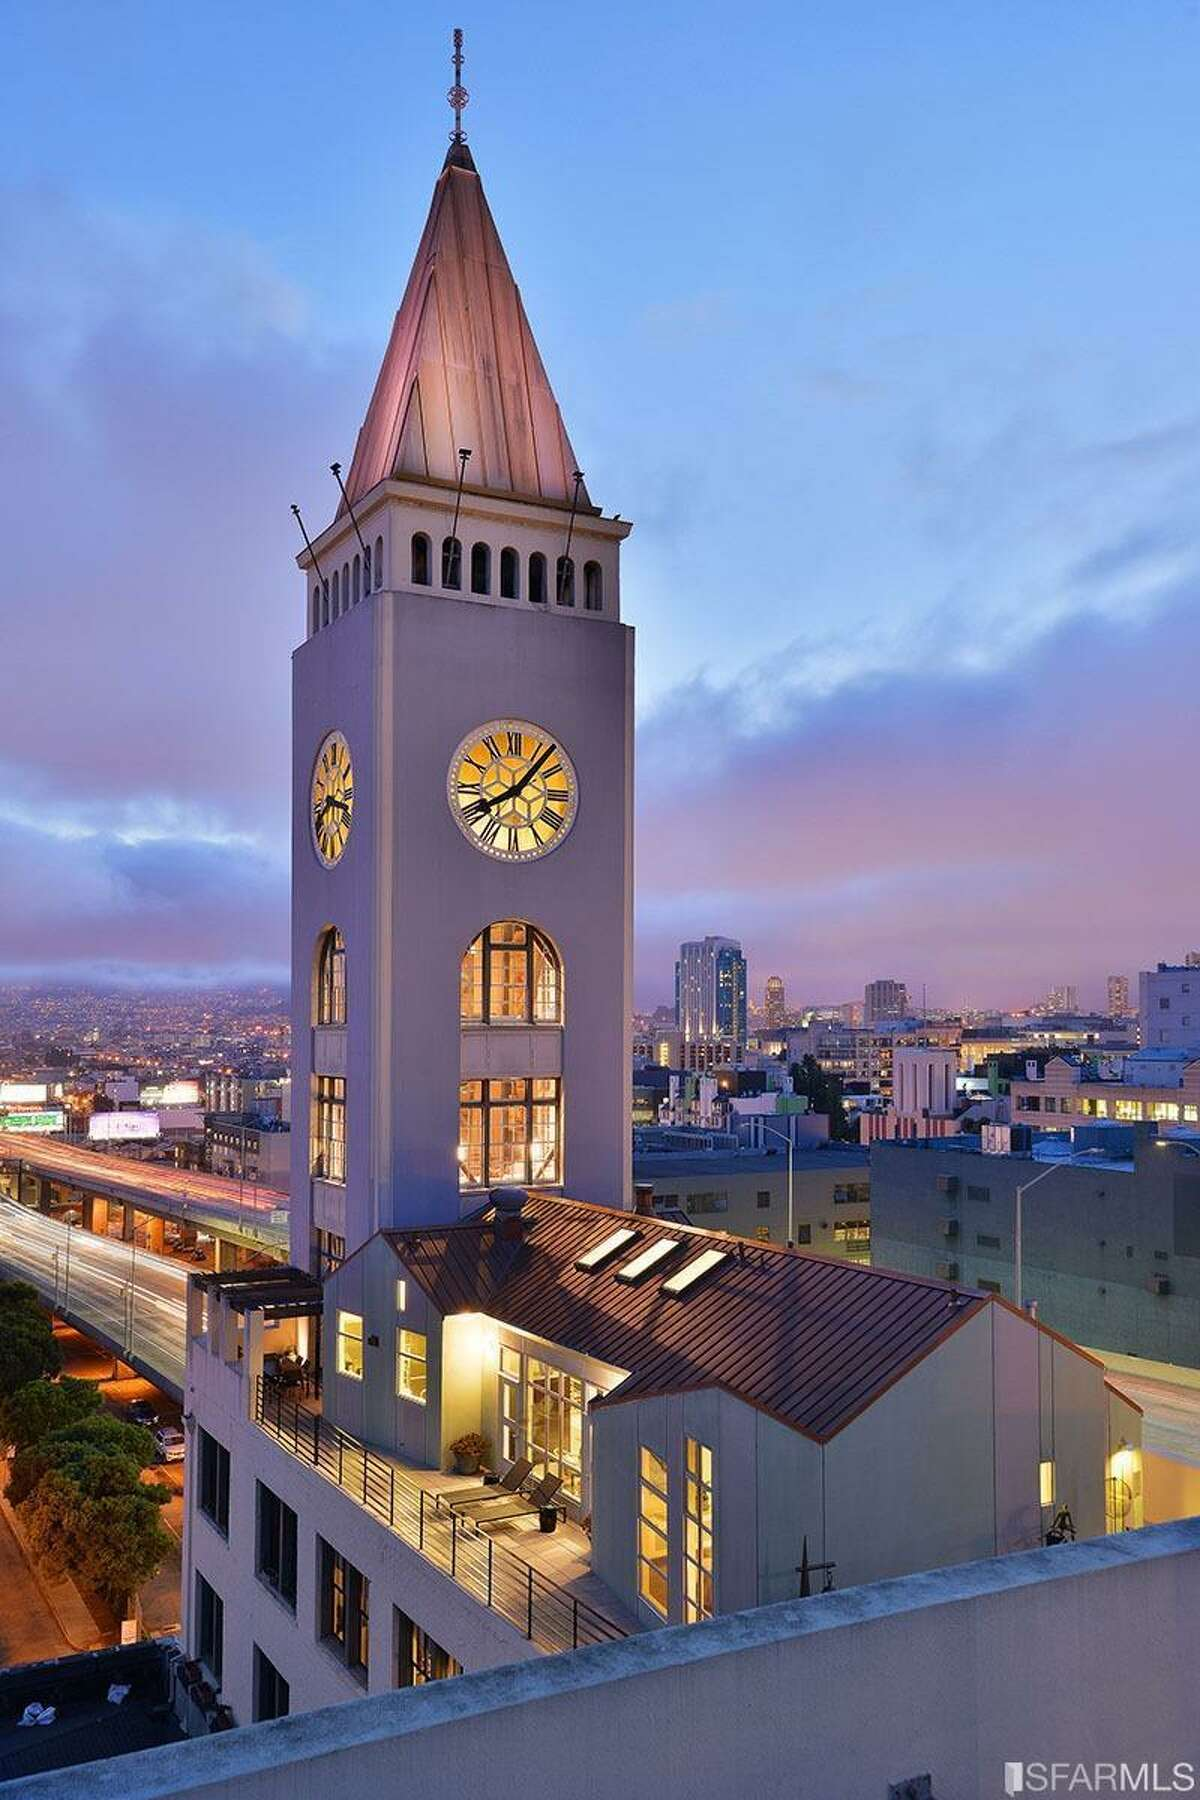 The penthouse comes with exclusive rights to the wraparound deck and the three-story clock tower.